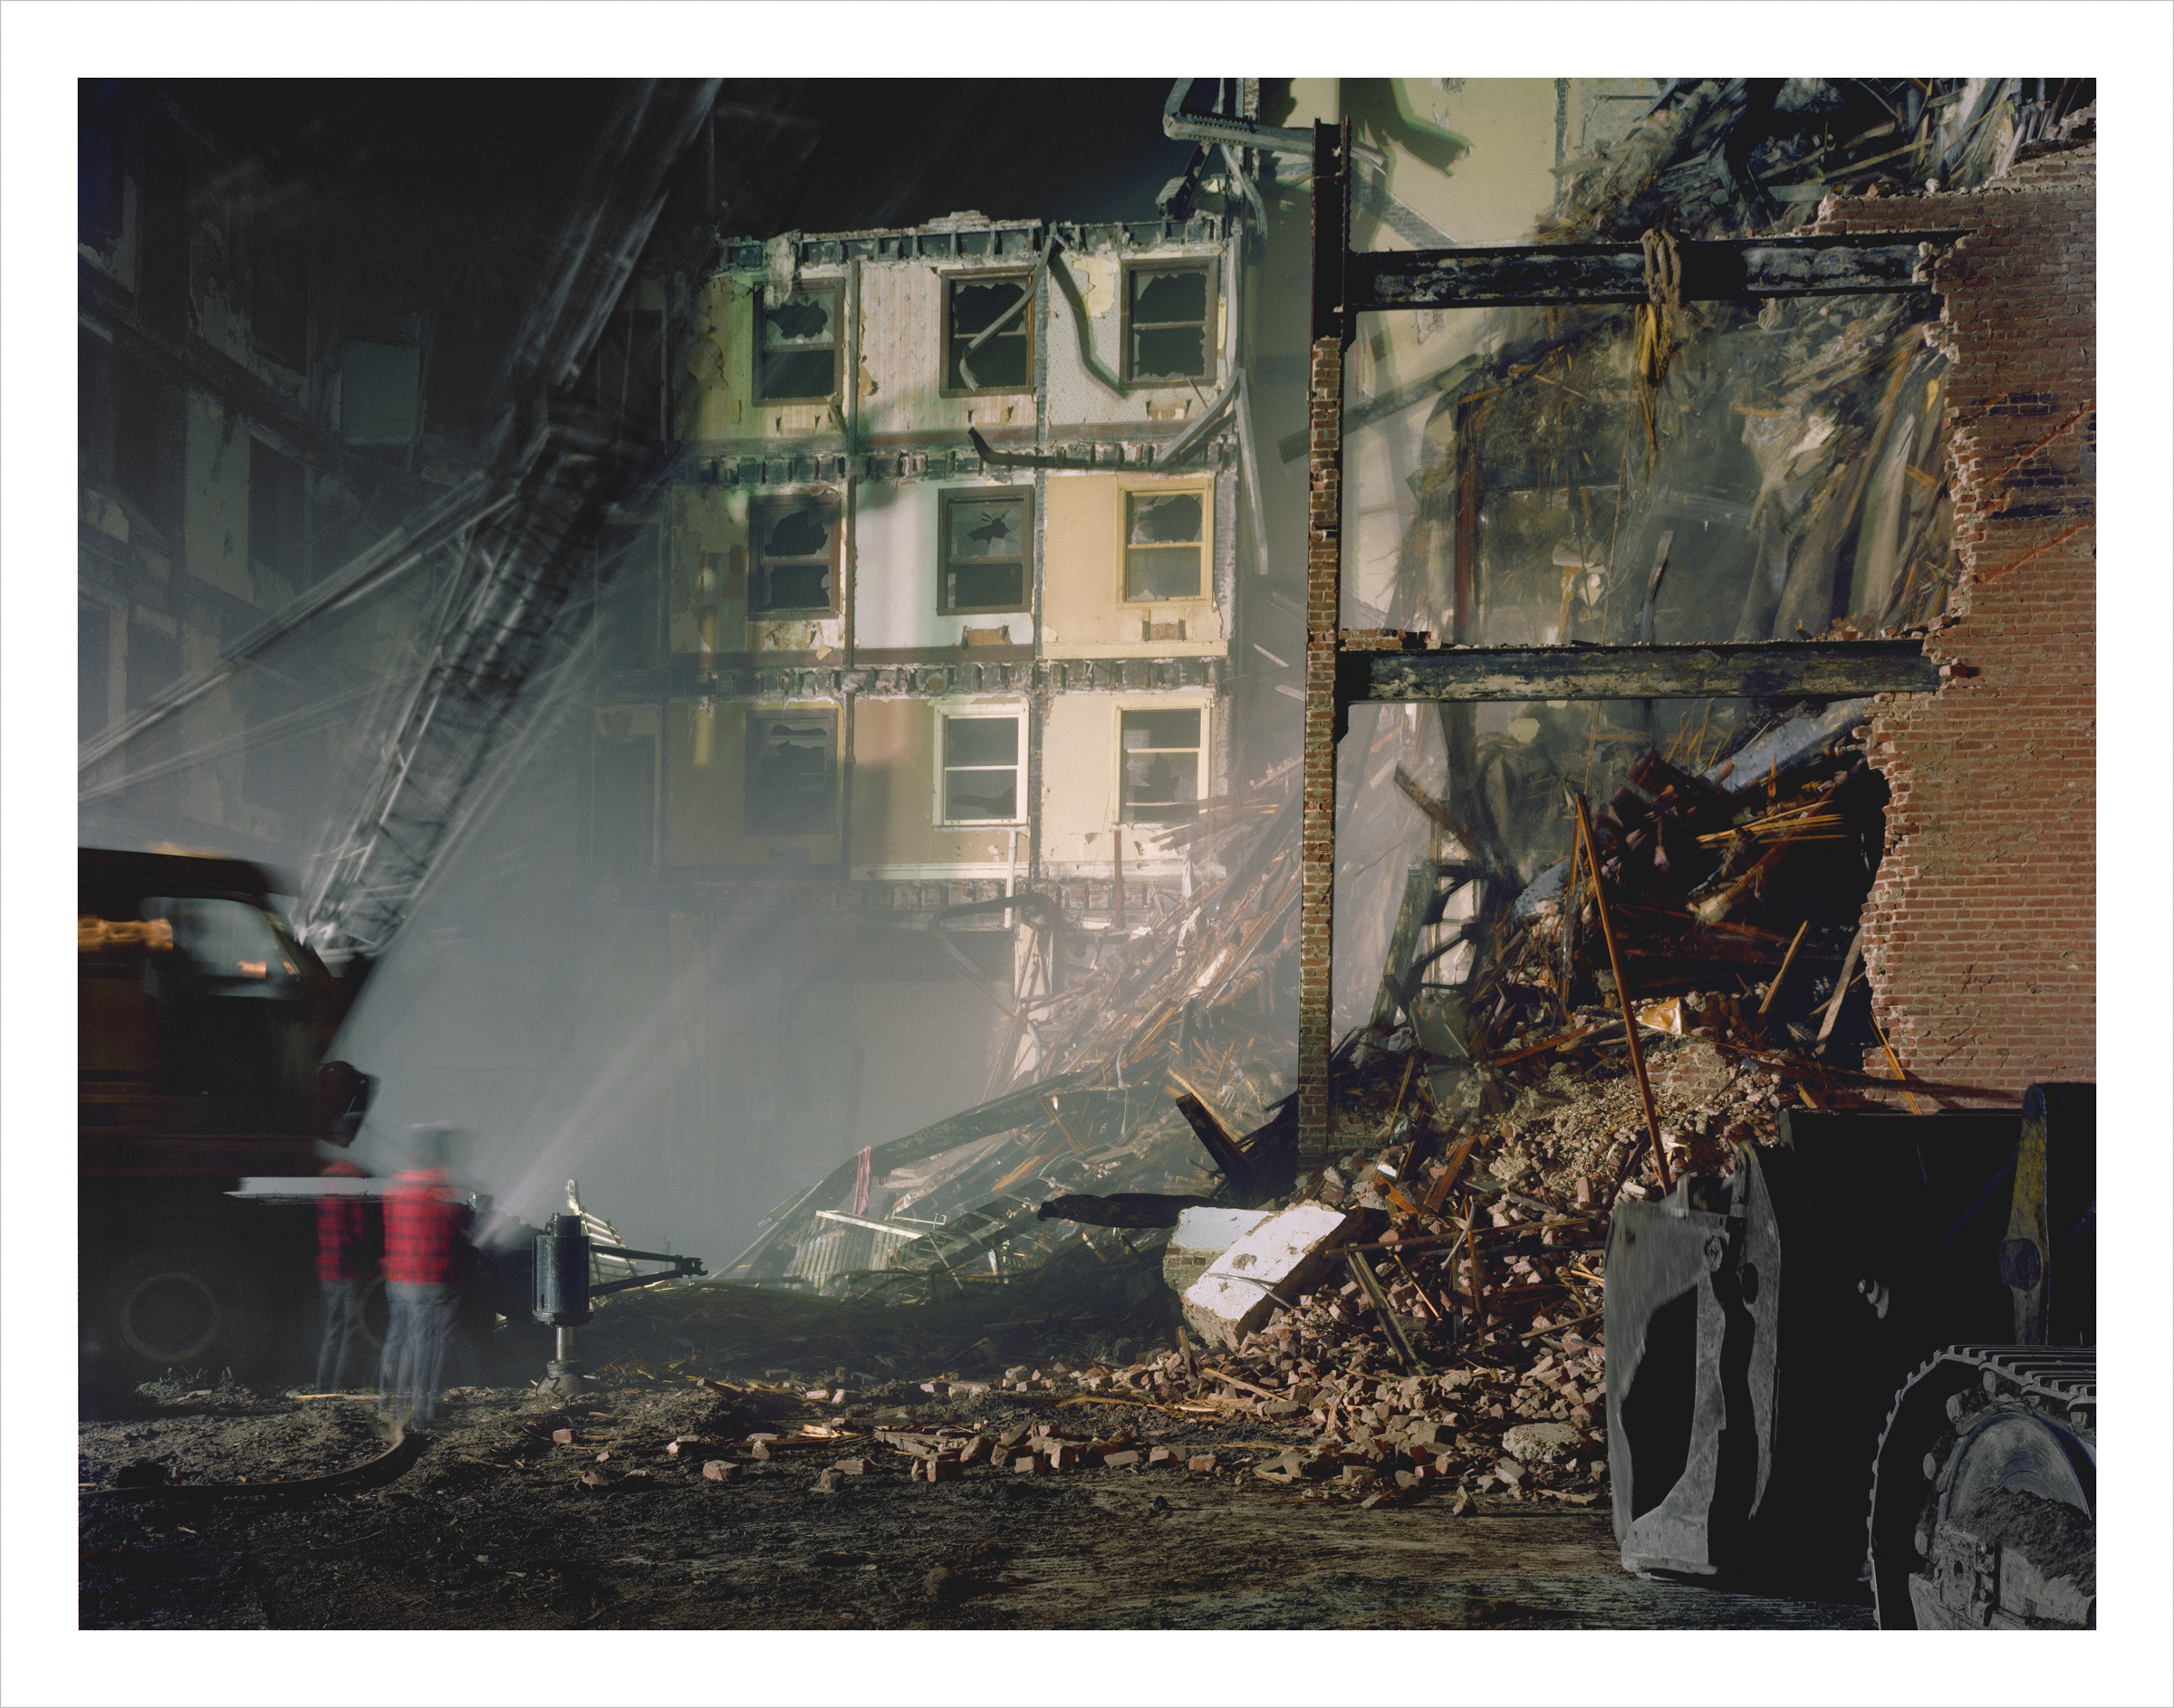 Night Deomolition of the Imperial Hotel, 4th at Minna Street, 1978 Archival Pigment Print, 2016 16 x 20 inches, edition of 5 20 x 24 inches, edition of 2 30 x 40 inches, edition of 2